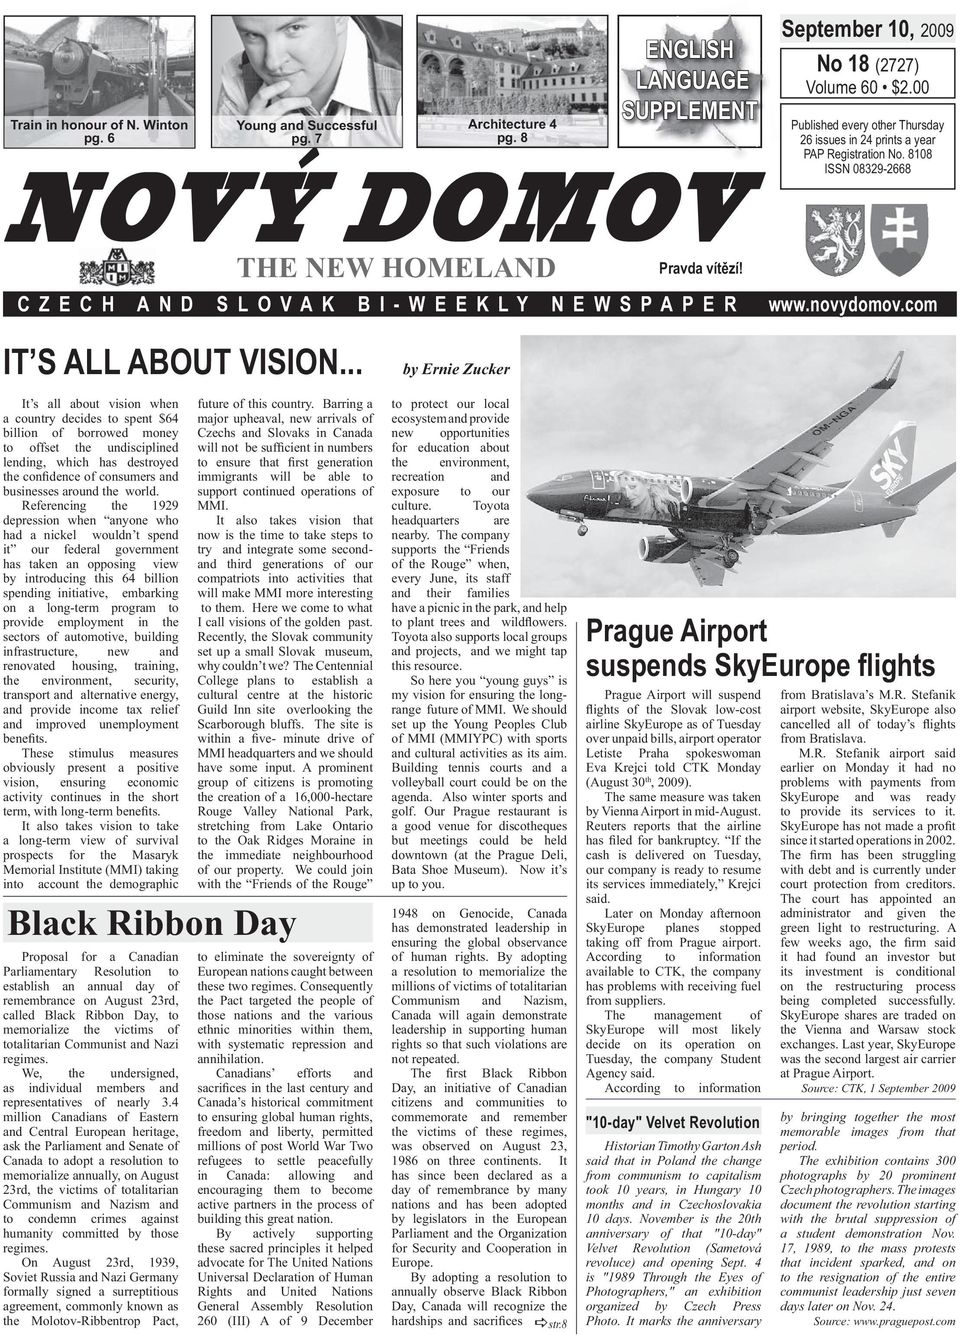 8 NOVÝ DOMOV THE NEW HOMELAND ENGLISH LANGUAGE SUPPLEMENT CZECH AND SLOVAK